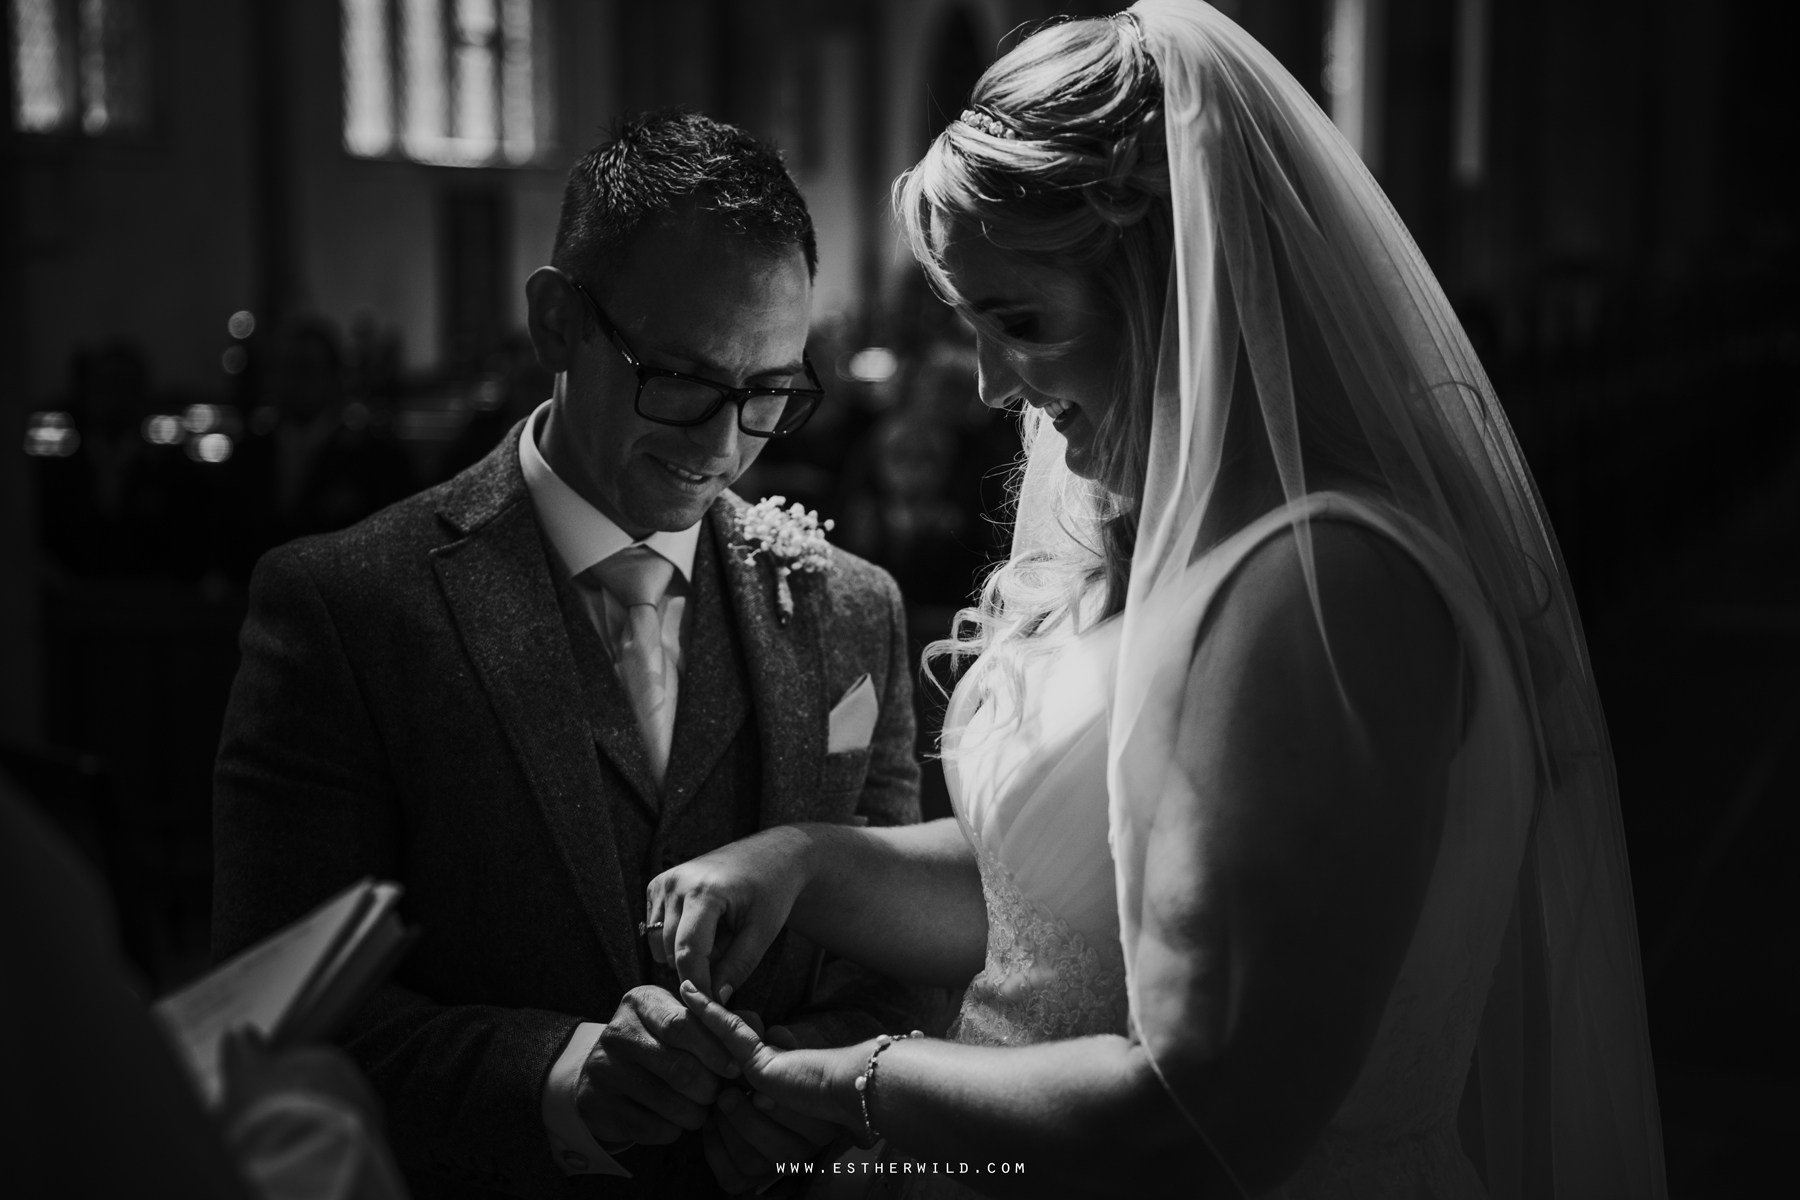 Swaffham_Wedding_Castle_Acre_Norfolk_Esther_Wild_Photographer_Wedding_Photography_3R8A0835-2.jpg